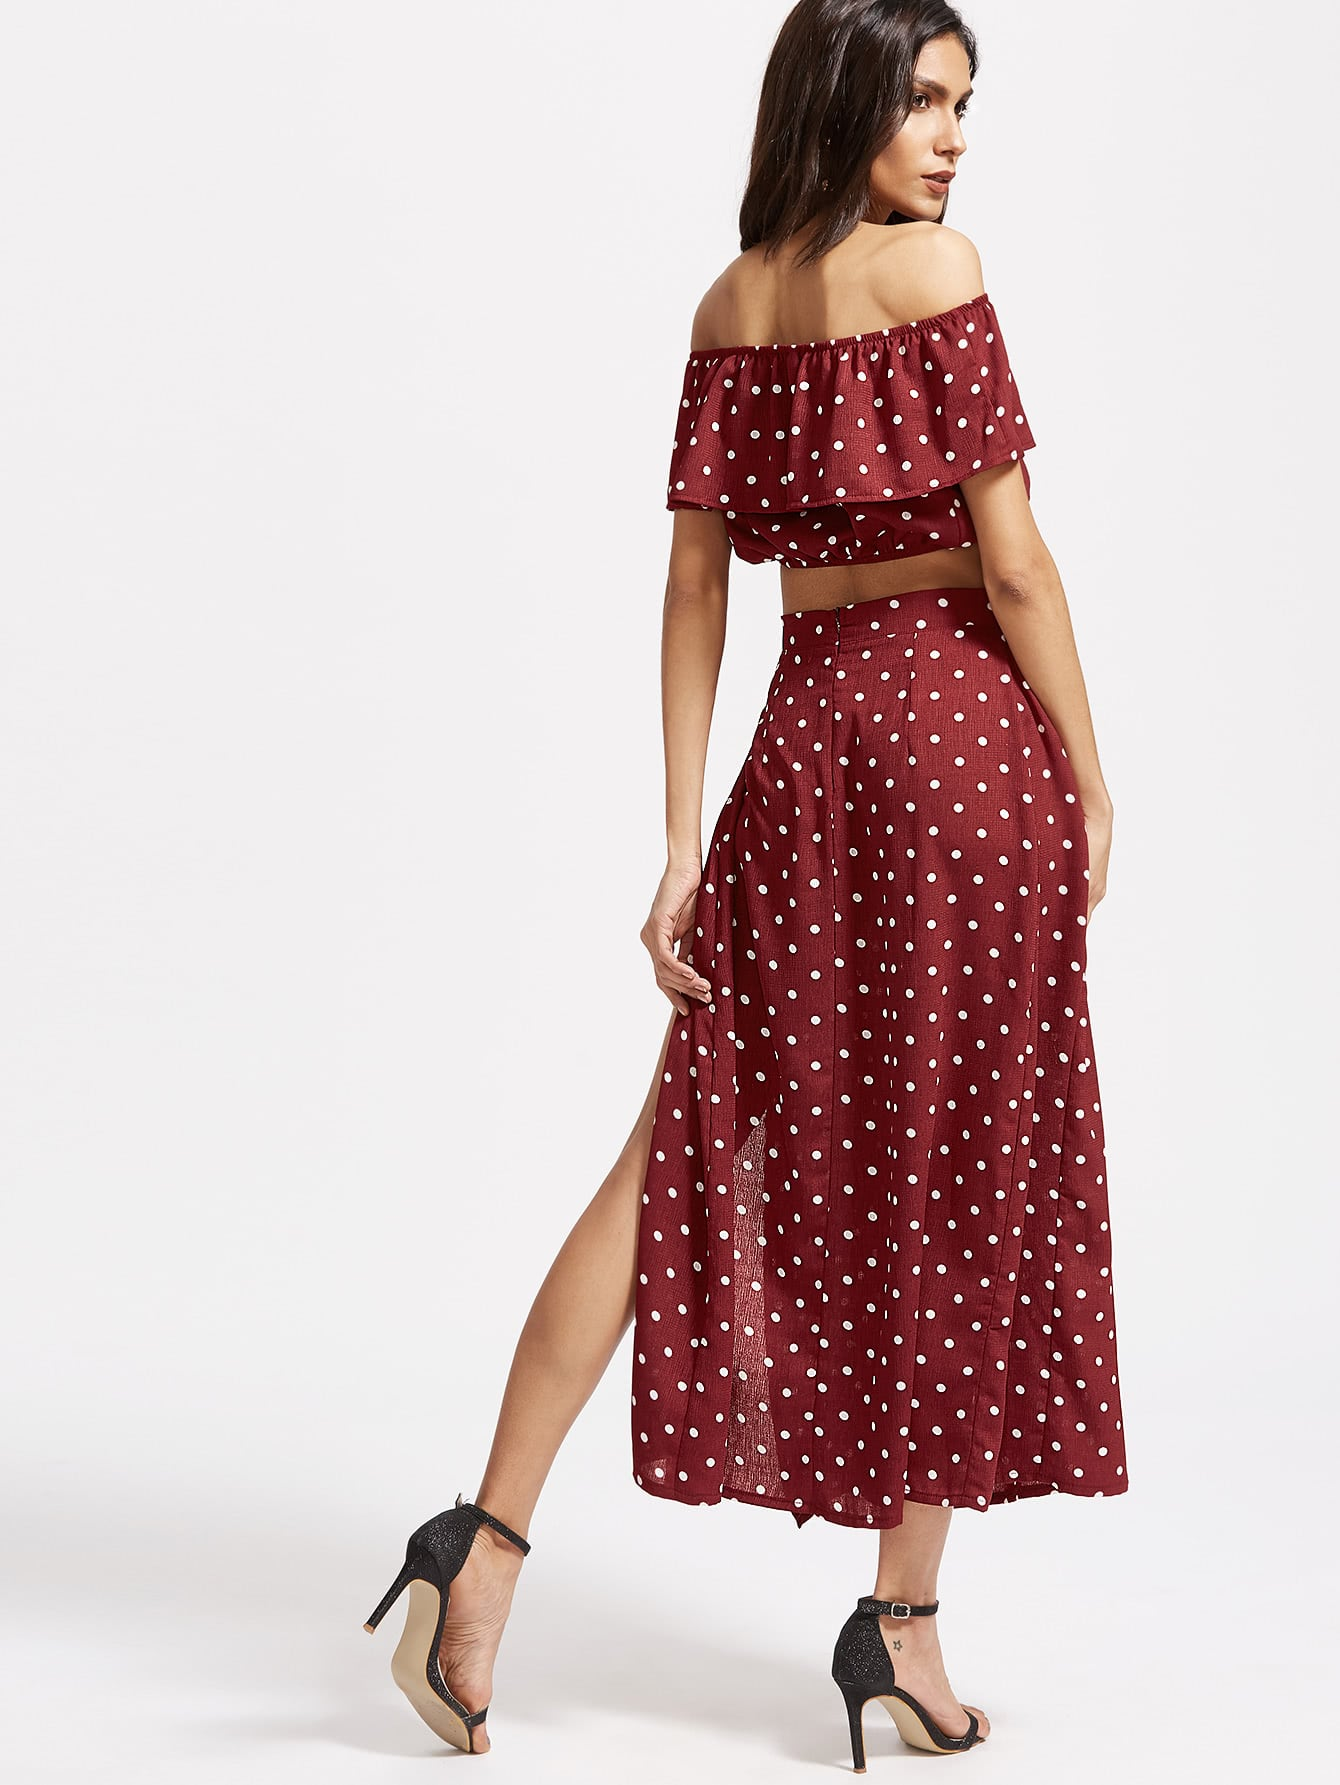 Textured Dot Ruffle Crop Top With Split Skirt by Romwe